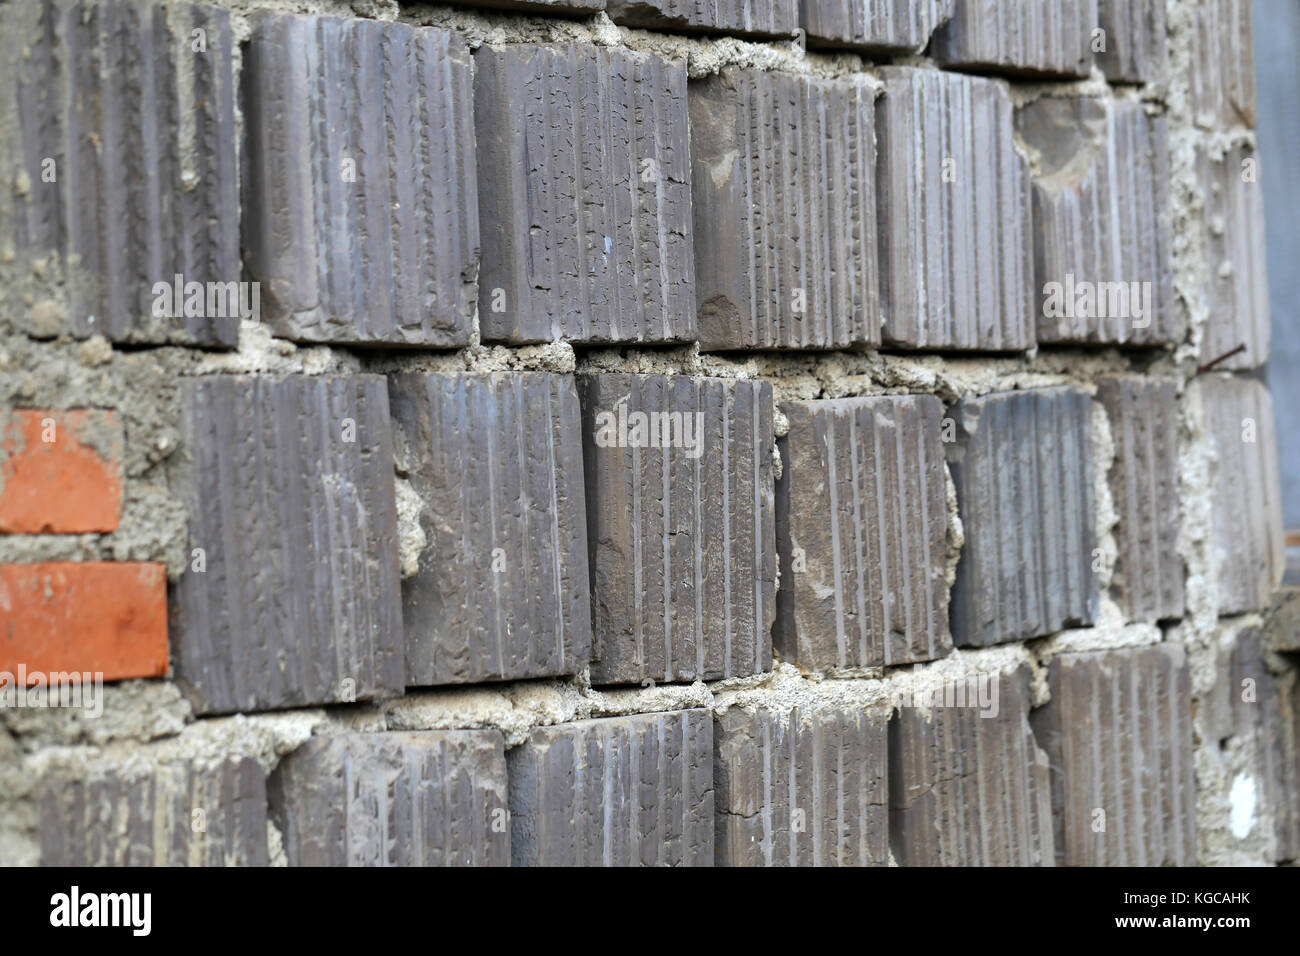 Sandstone / Wall made of natural stones. - Stock Image